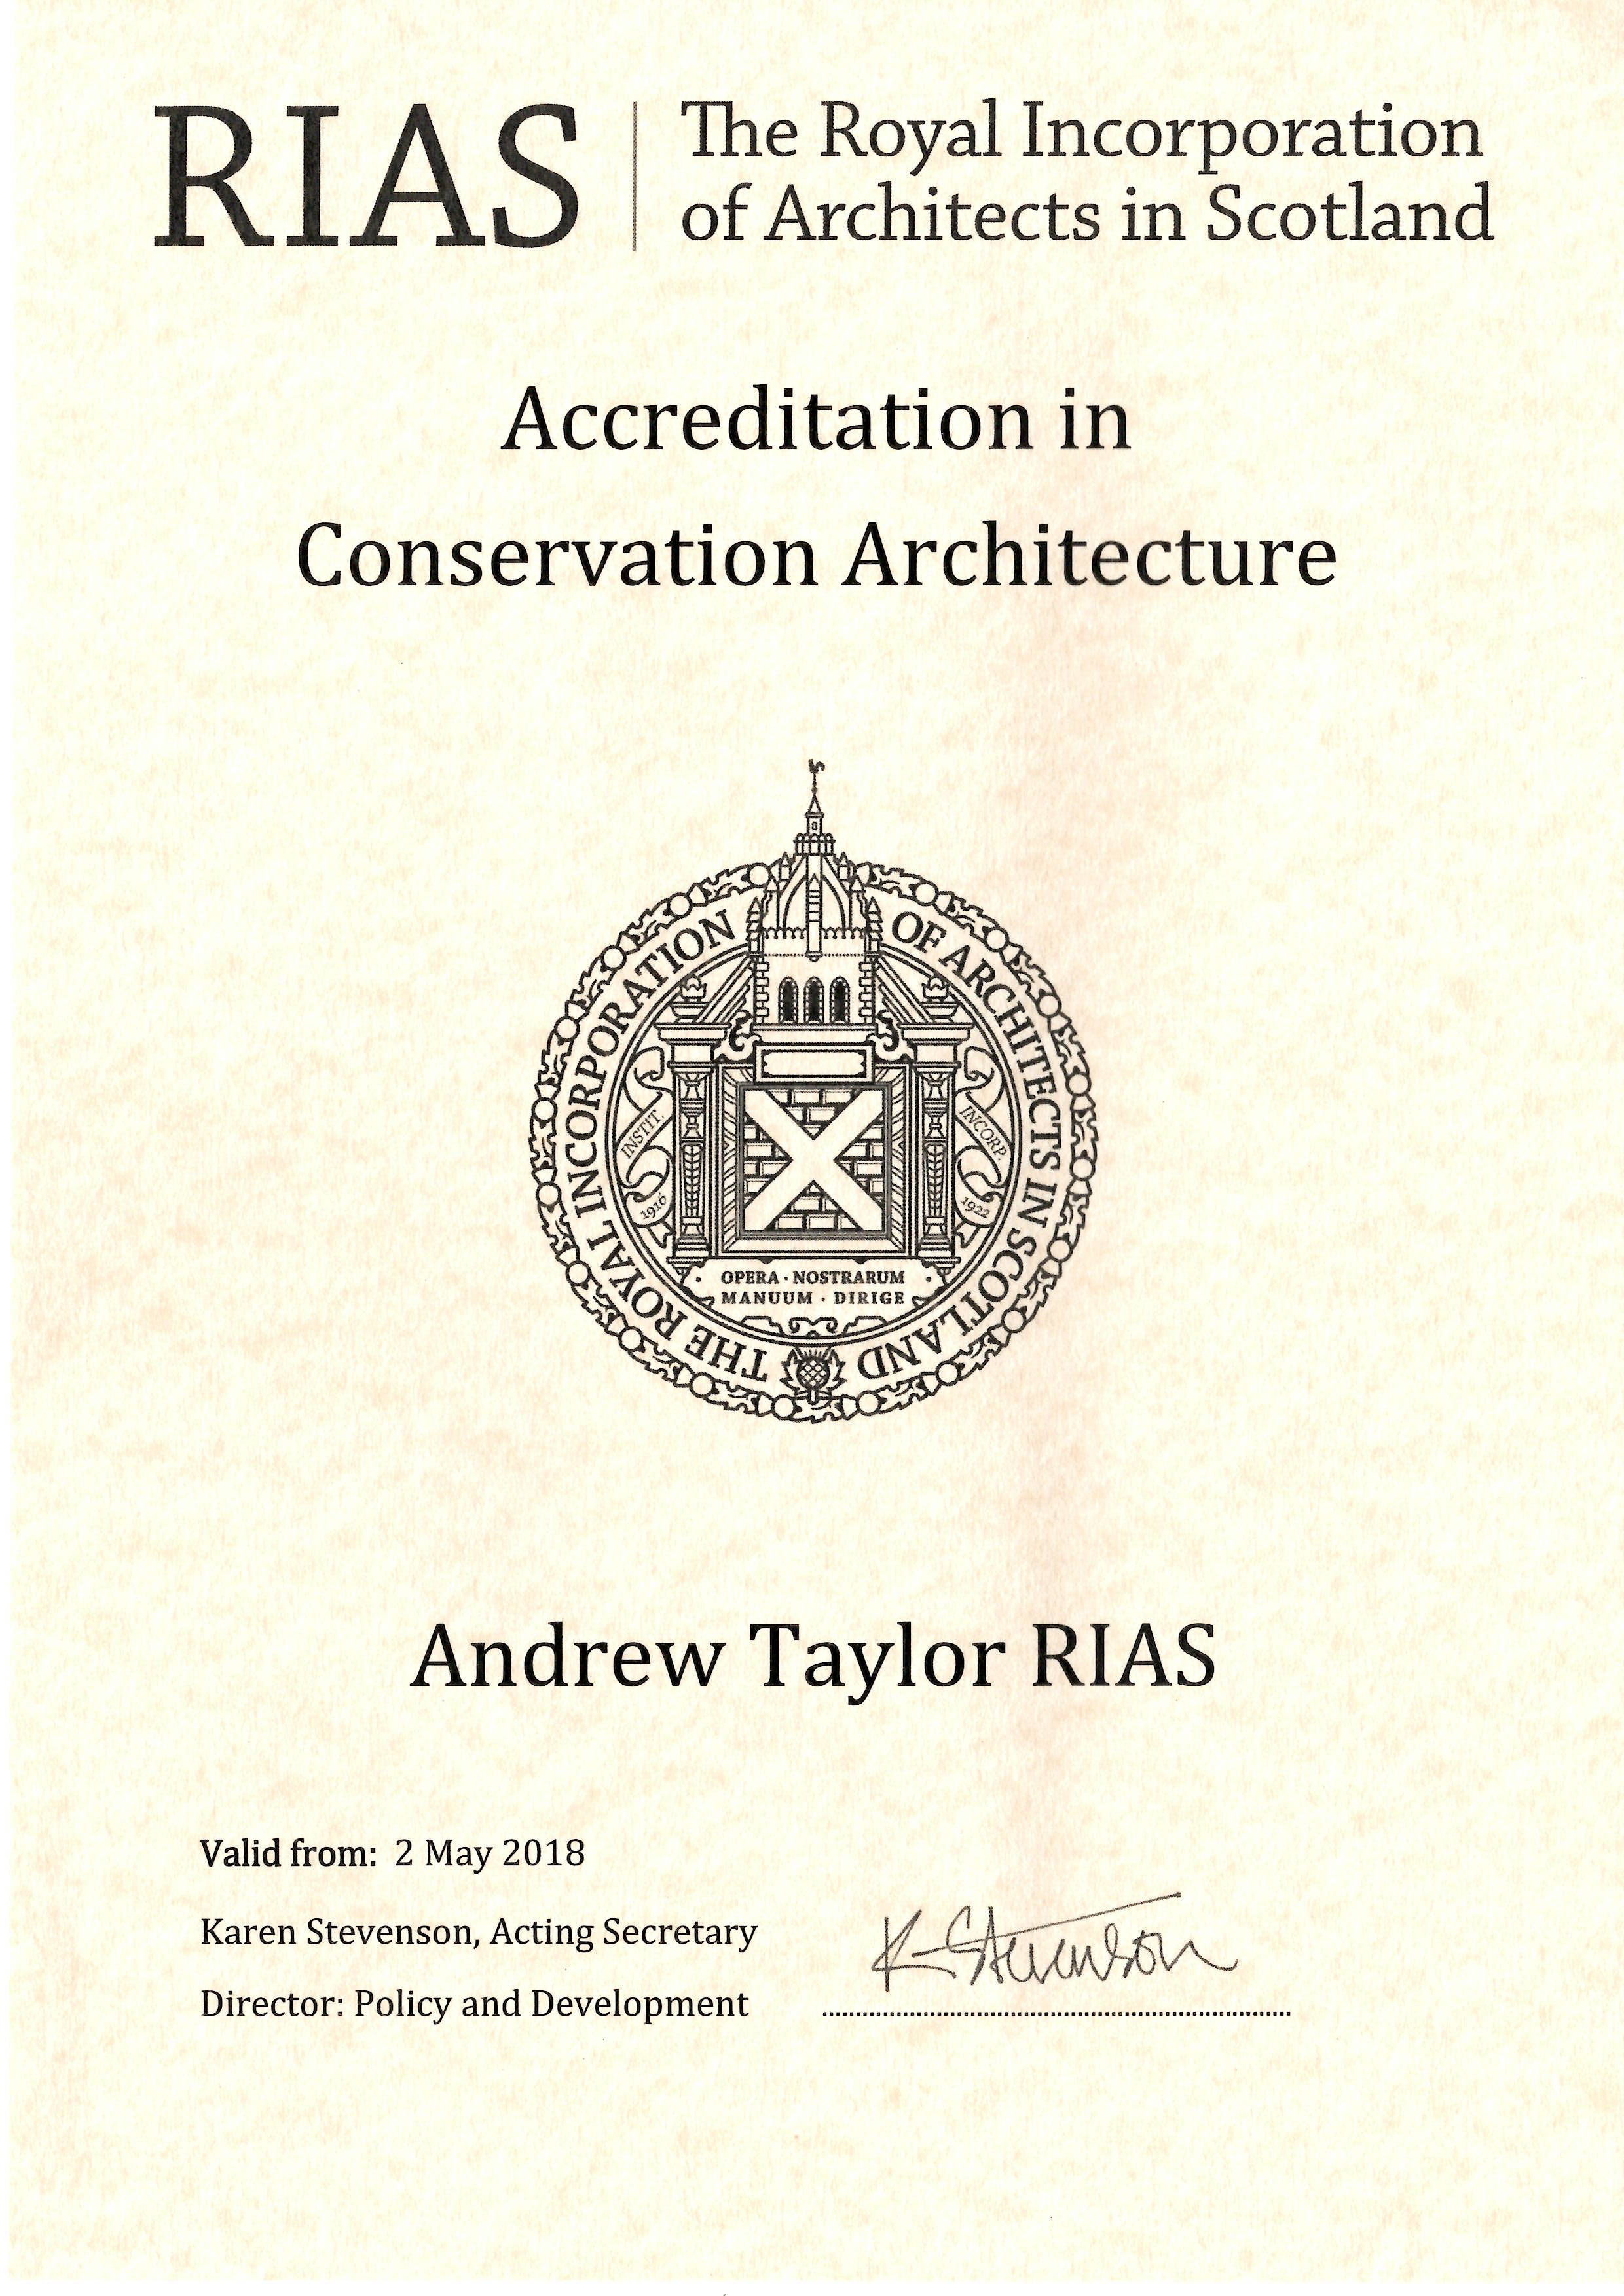 2018 Conservation Accreditation Certificate.jpg